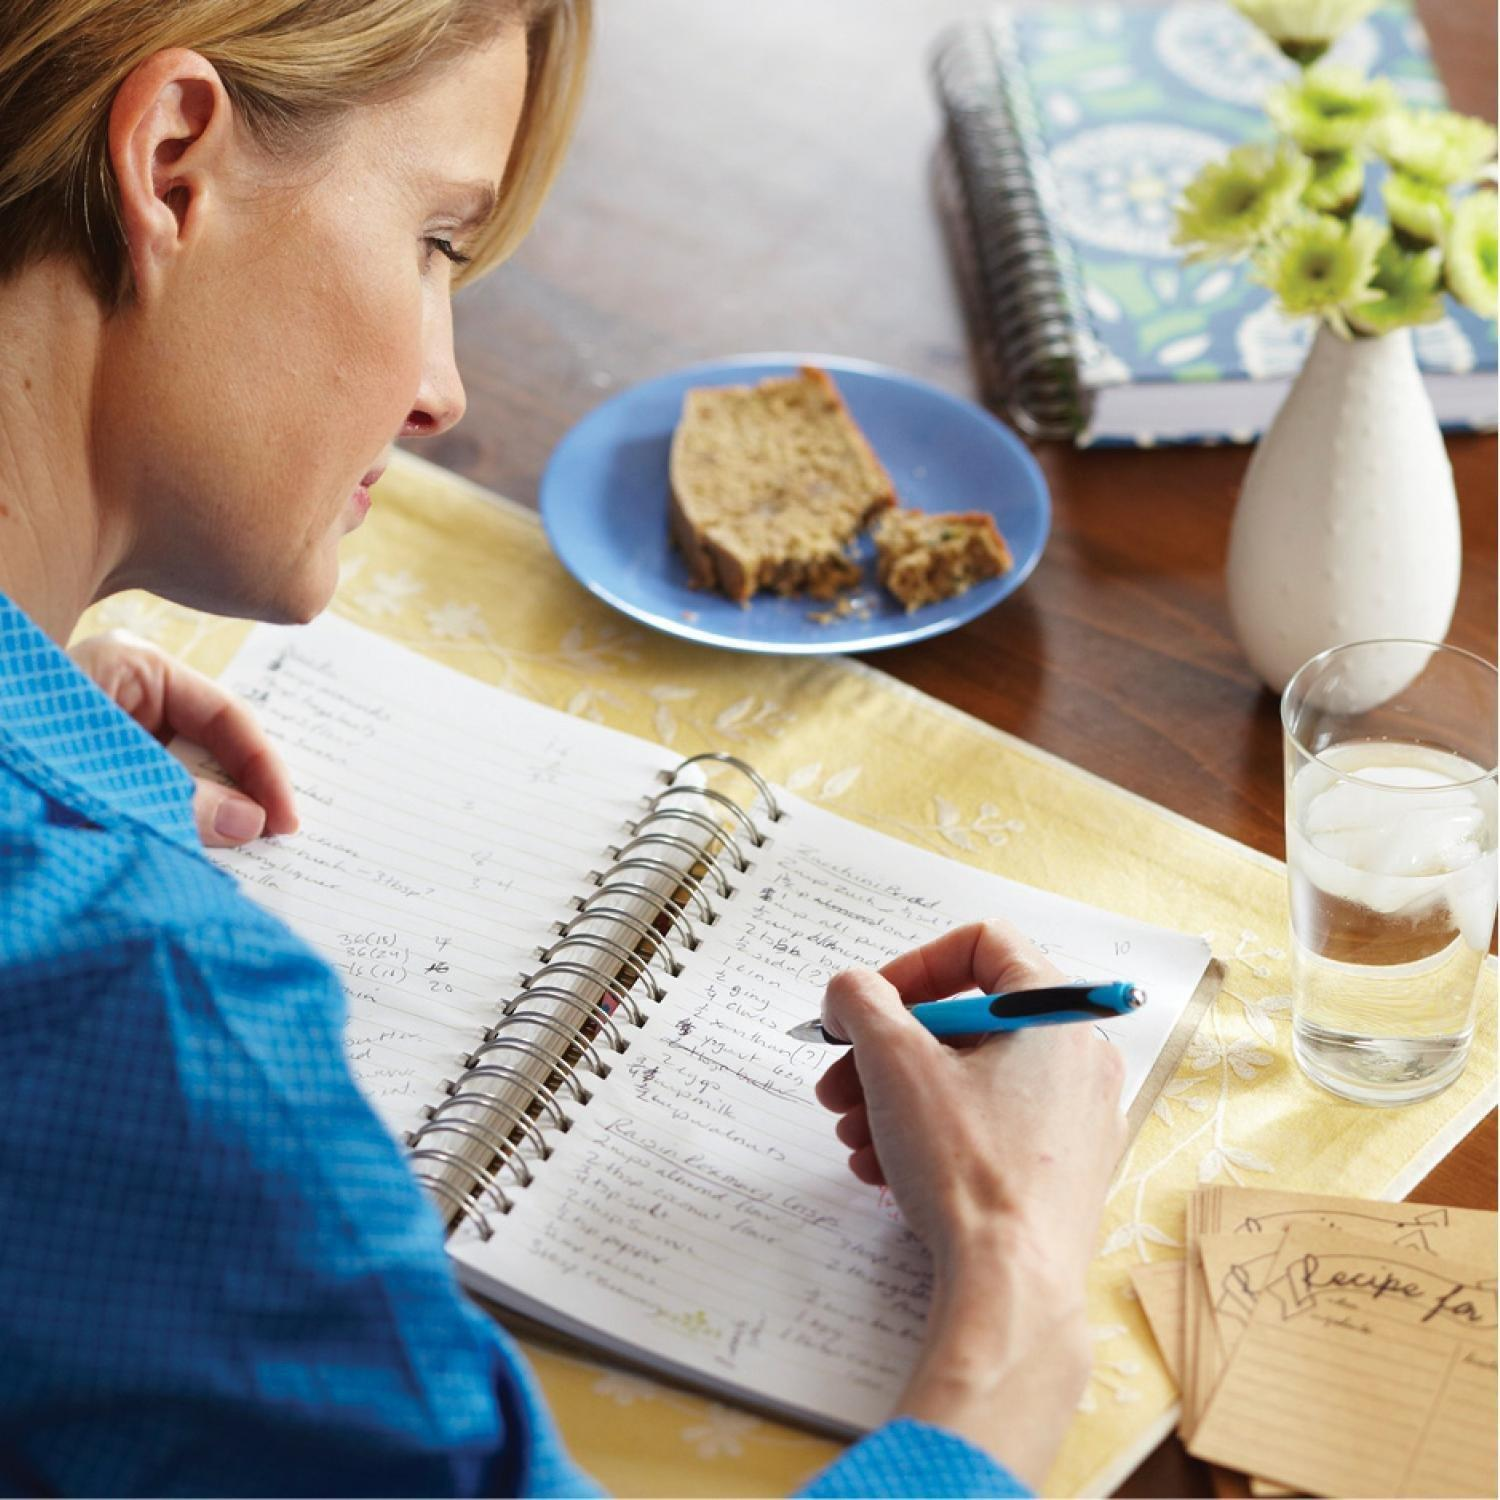 Use A Diabetes Journal To Monitor Blood Glucose